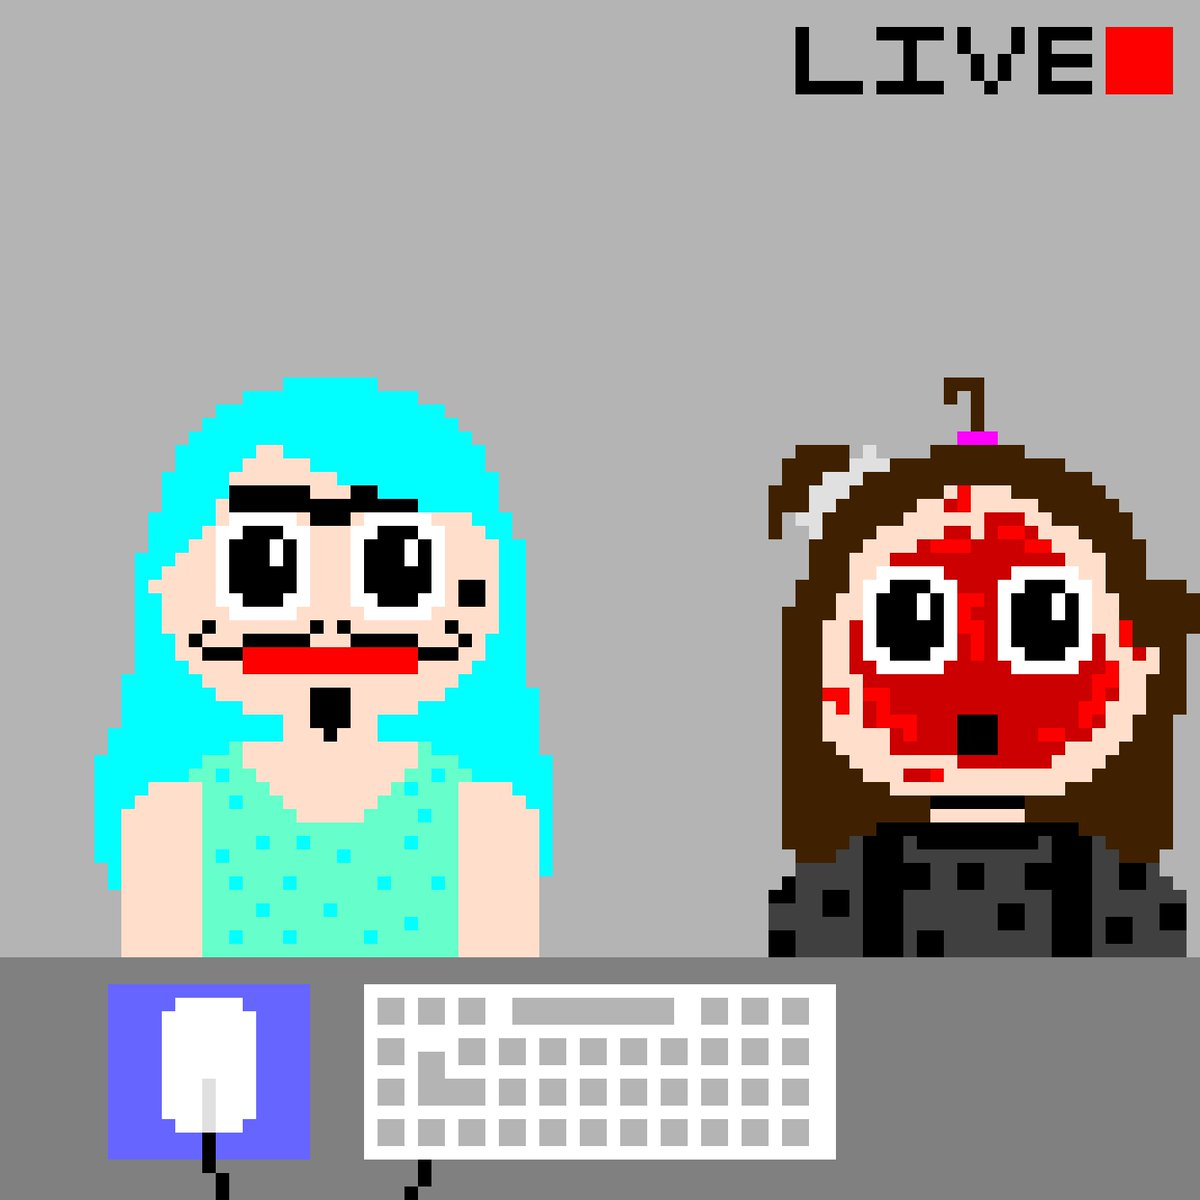 nettyplays A pixel art based on @nettyplays and @Tomohawk1989 's livestream. You won't  find content like THIS anywhere else!pic.twitter.com/XQ7KgtllQc